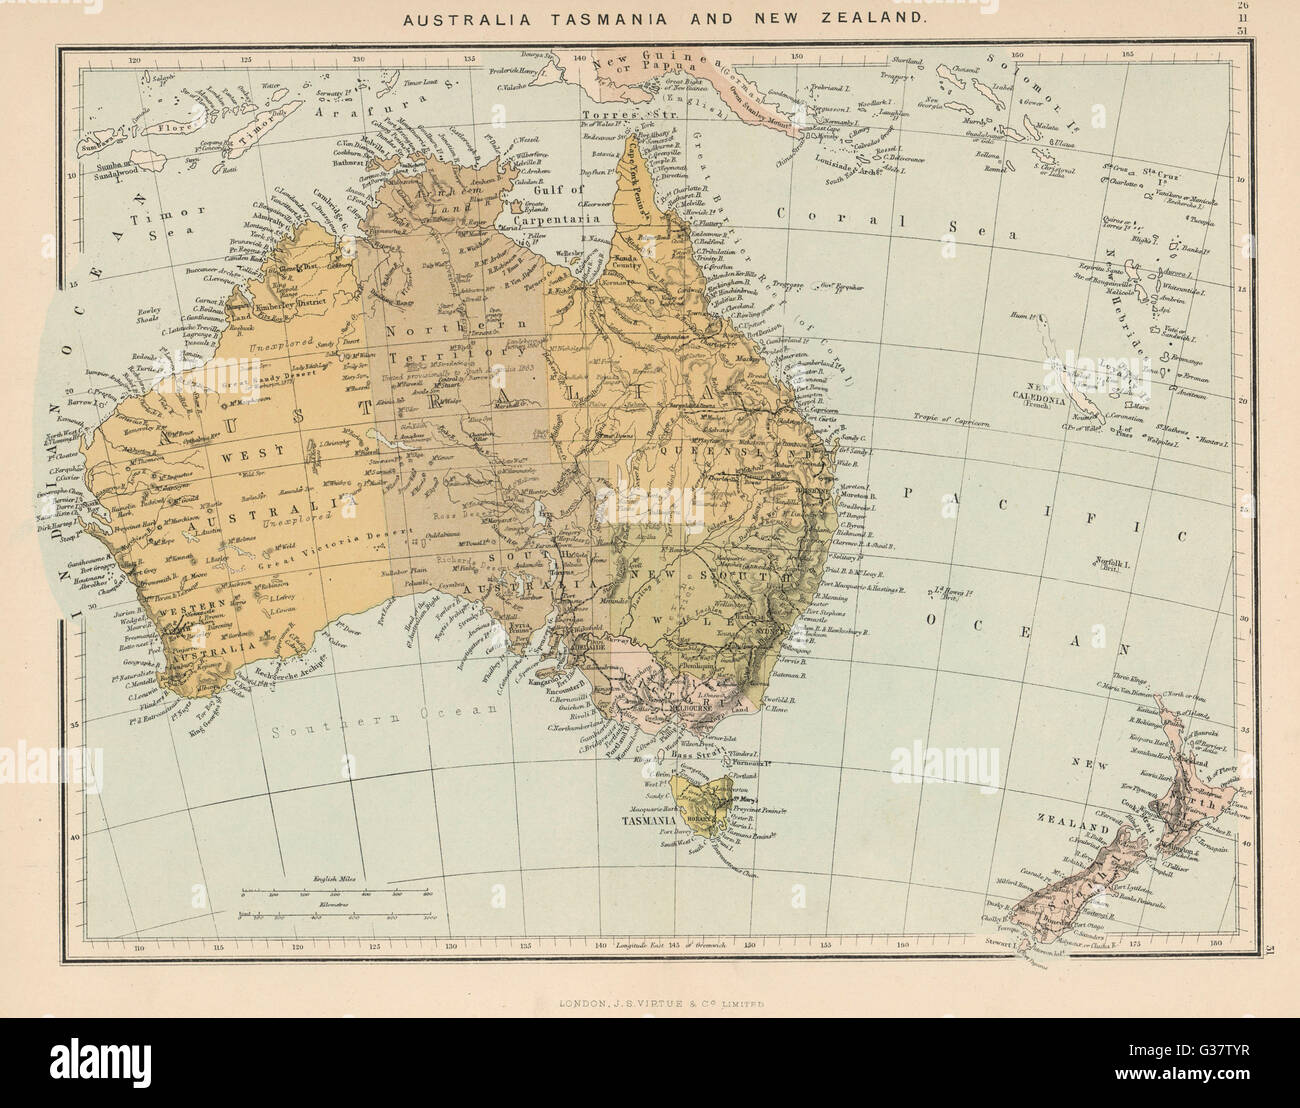 Map showing australia tasmania new zealand and neighbouring stock map showing australia tasmania new zealand and neighbouring islands date circa 1890 gumiabroncs Images